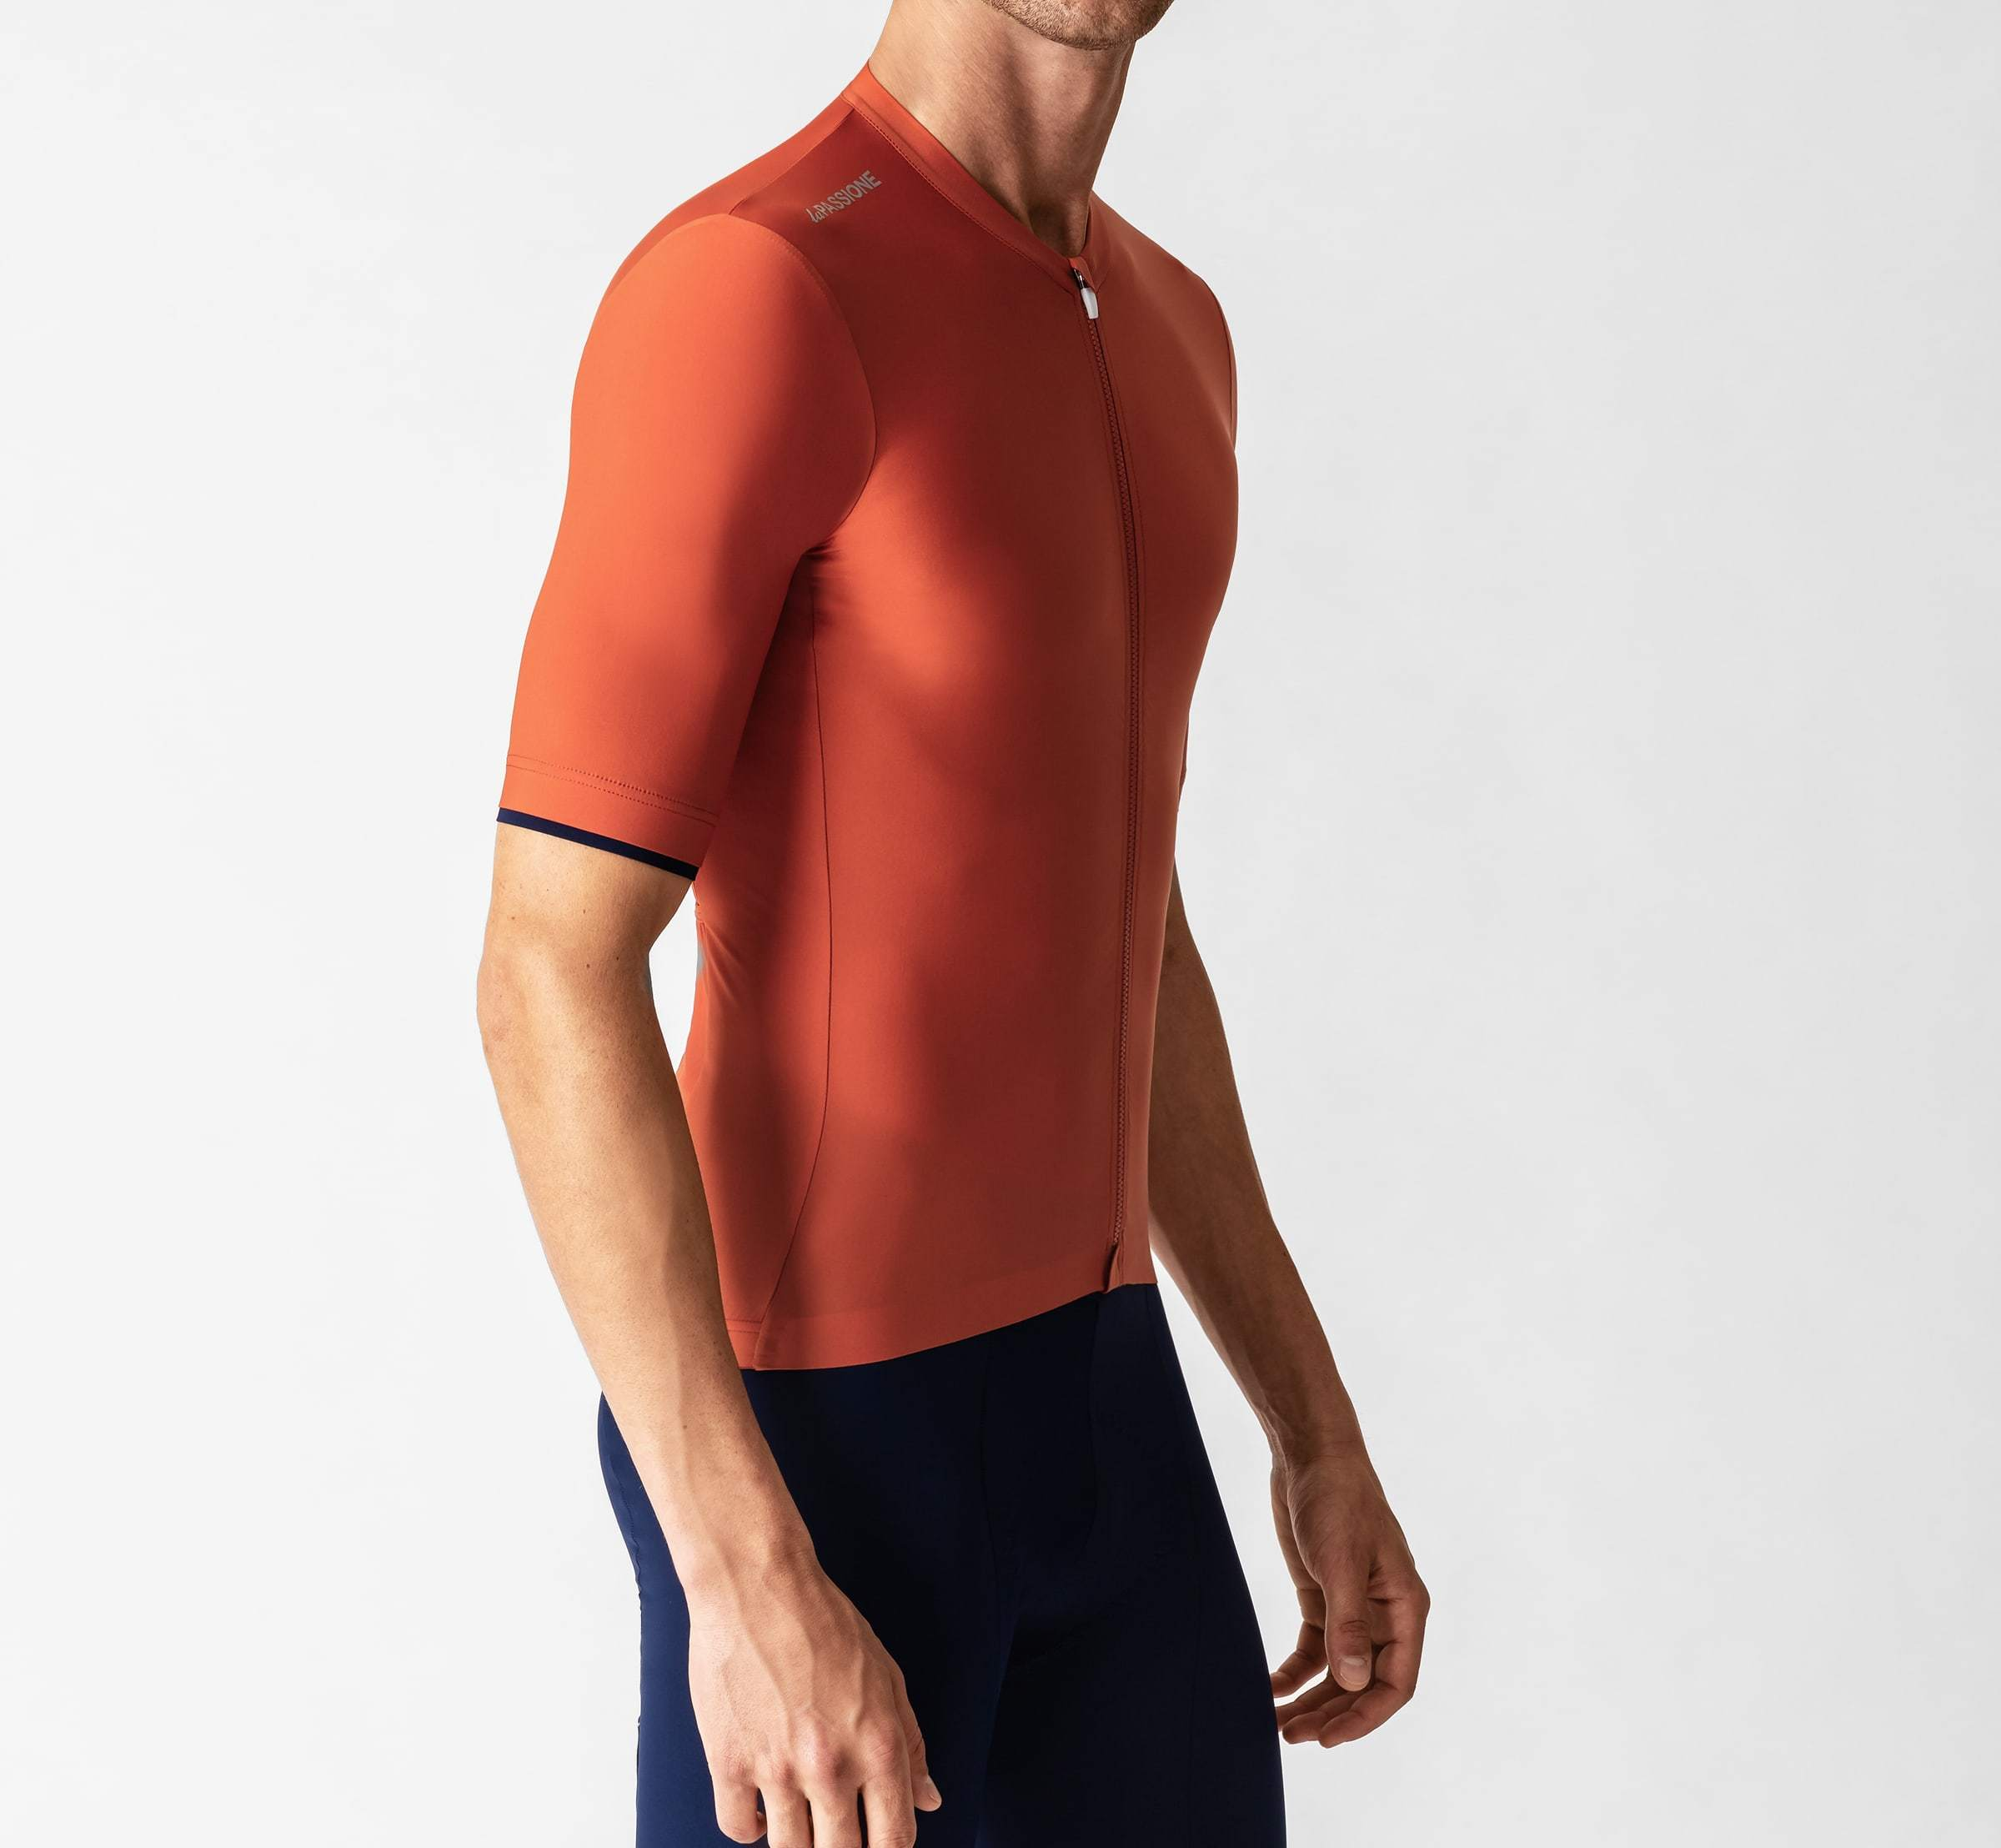 PSN Jersey Rust | La Passione Cycling Couture